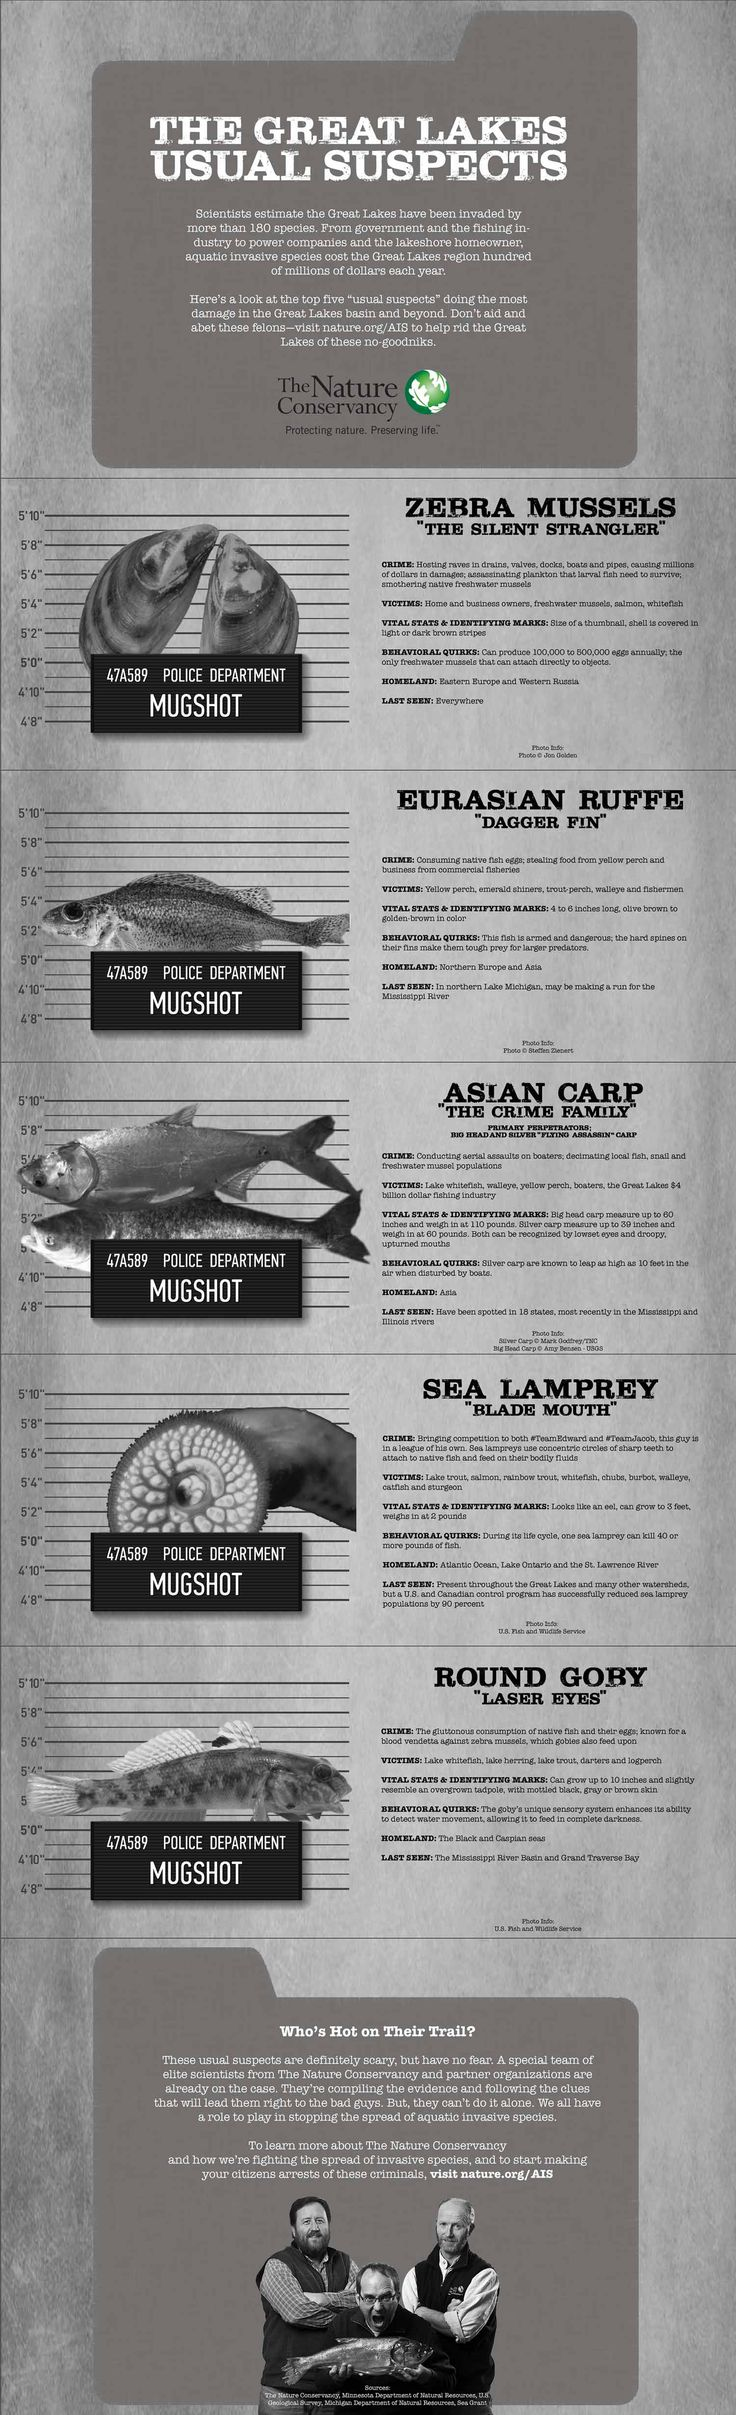 """Nature conservancy's great lakes Invasive Species Infographic; great activity for invasive species, could also do them as """"Wanted posters"""""""